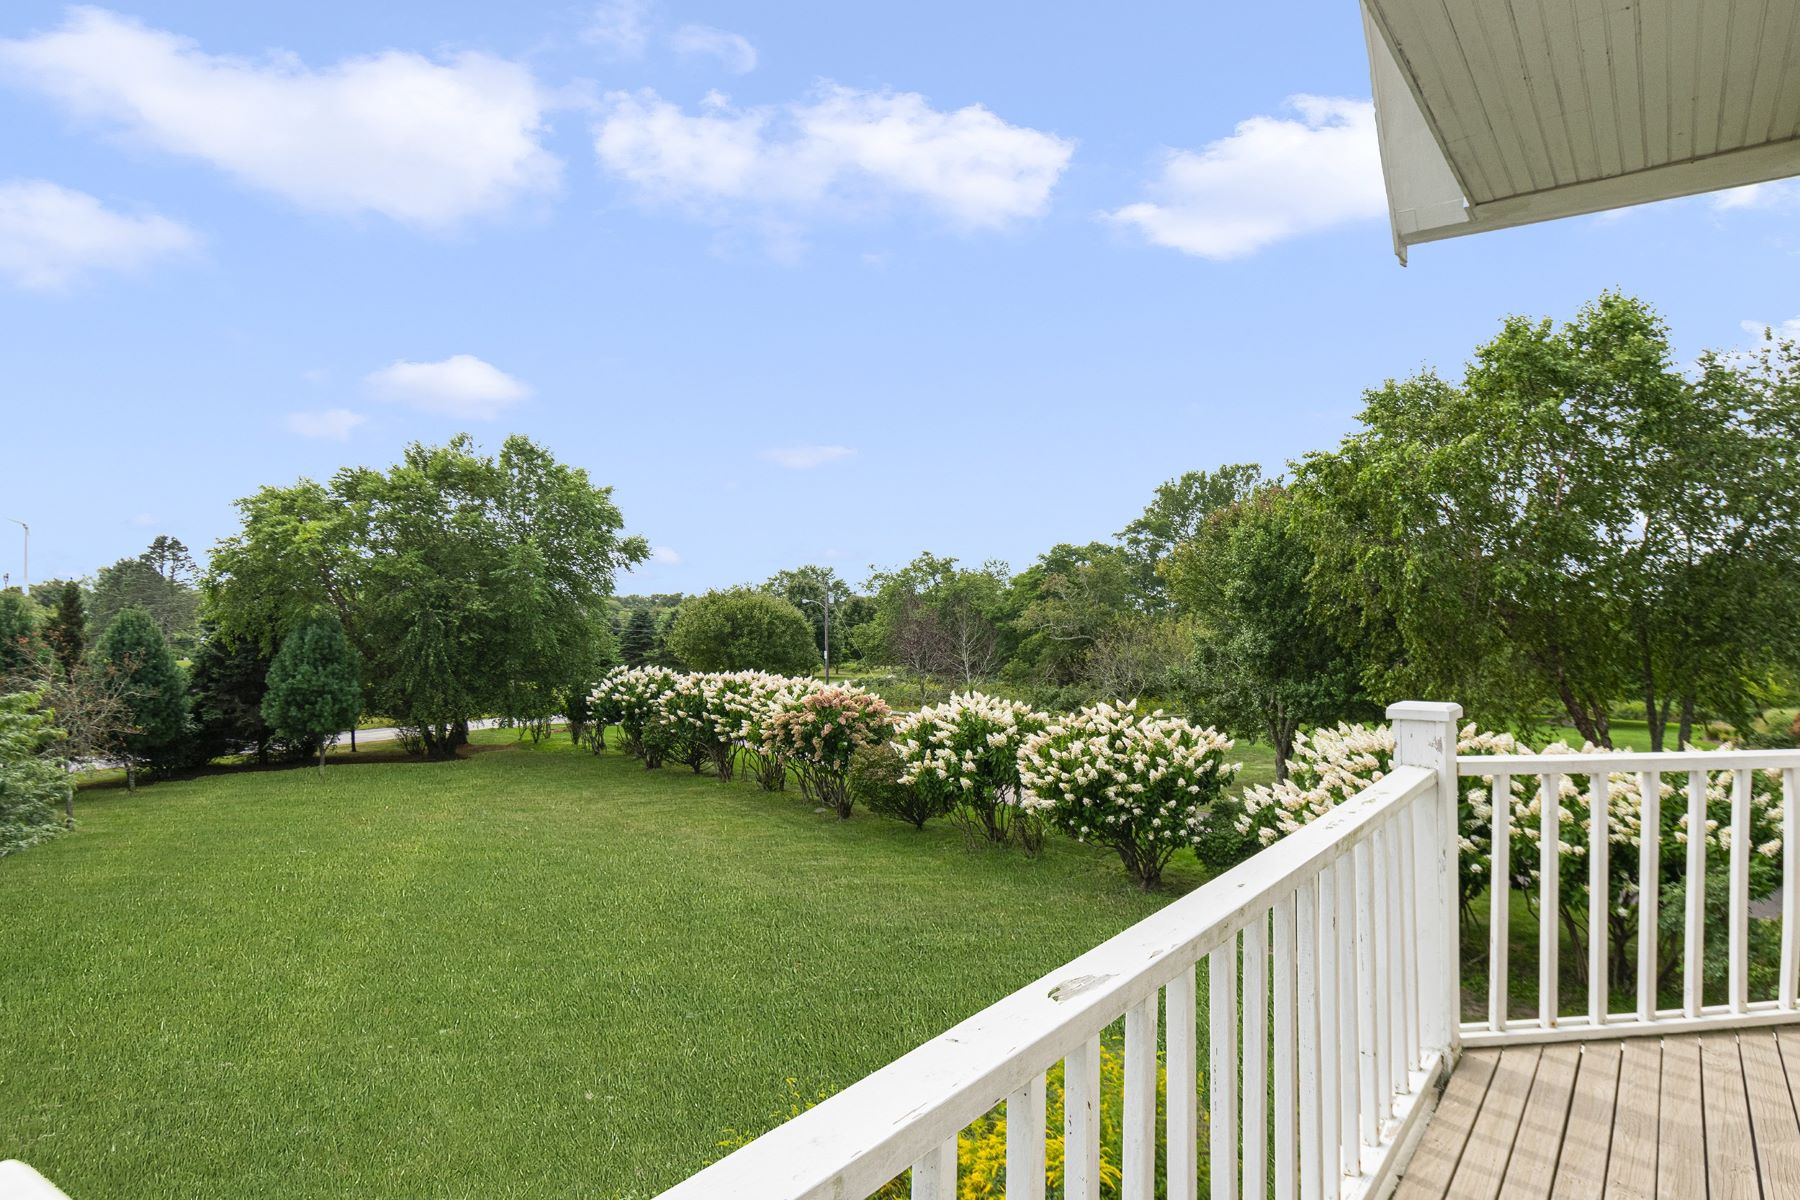 Additional photo for property listing at 51 Sunset Boulevard, Narragansett, RI 51 Sunset Boulevard Narragansett, Rhode Island 02882 United States